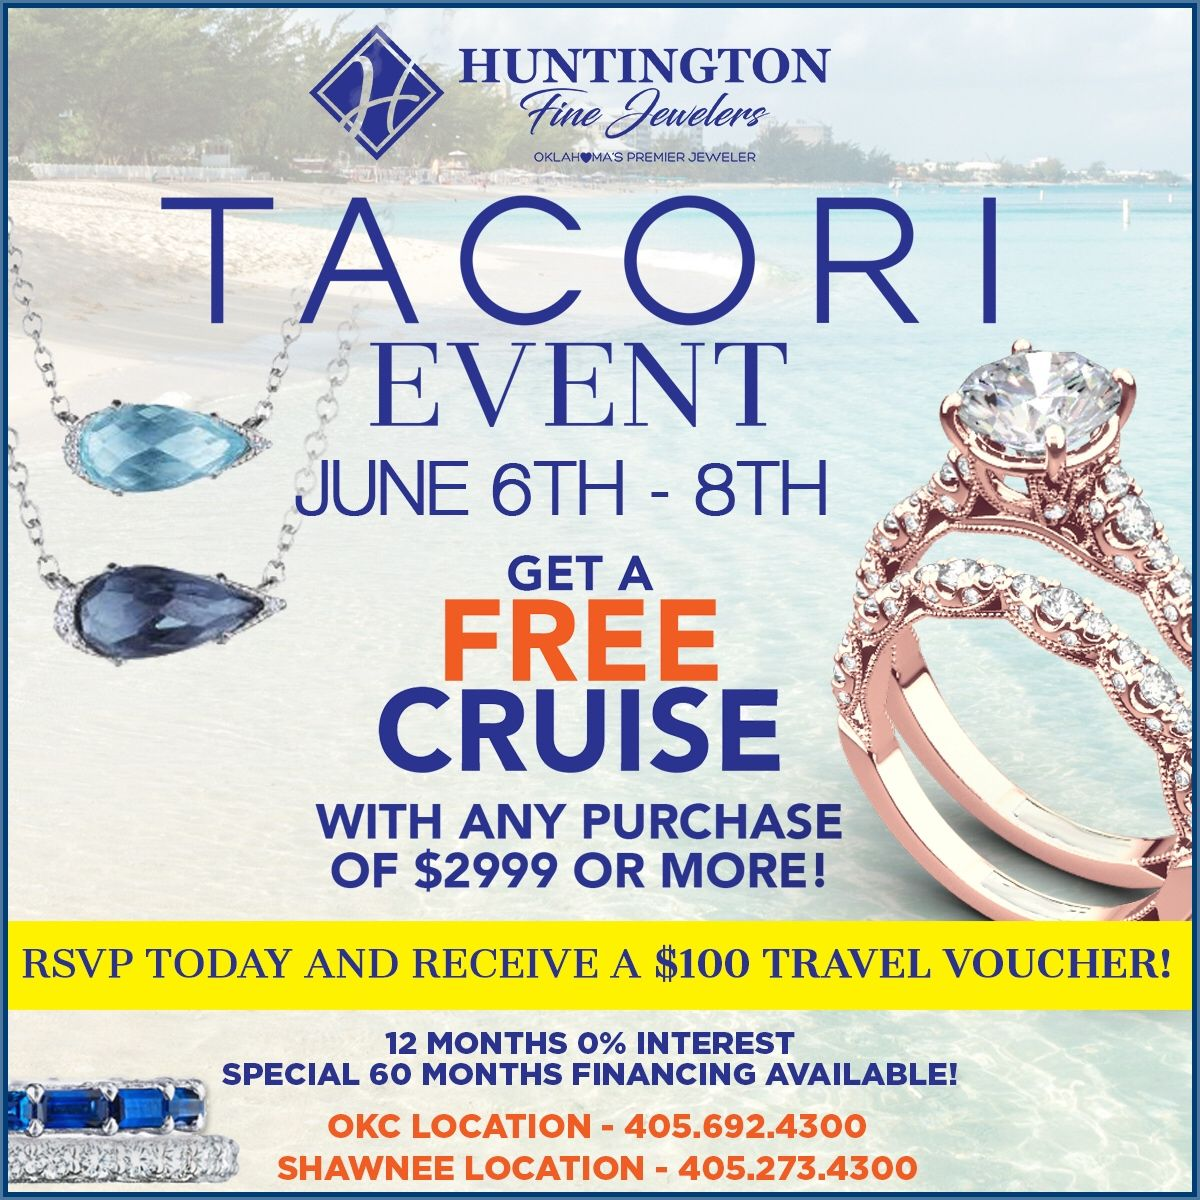 12 Months 0 Interest Special 60 Months Financing Available Rsvp Today And Receive A 100 Travel Voucher Join Us For Our Tacori Ev Event Tacori Special